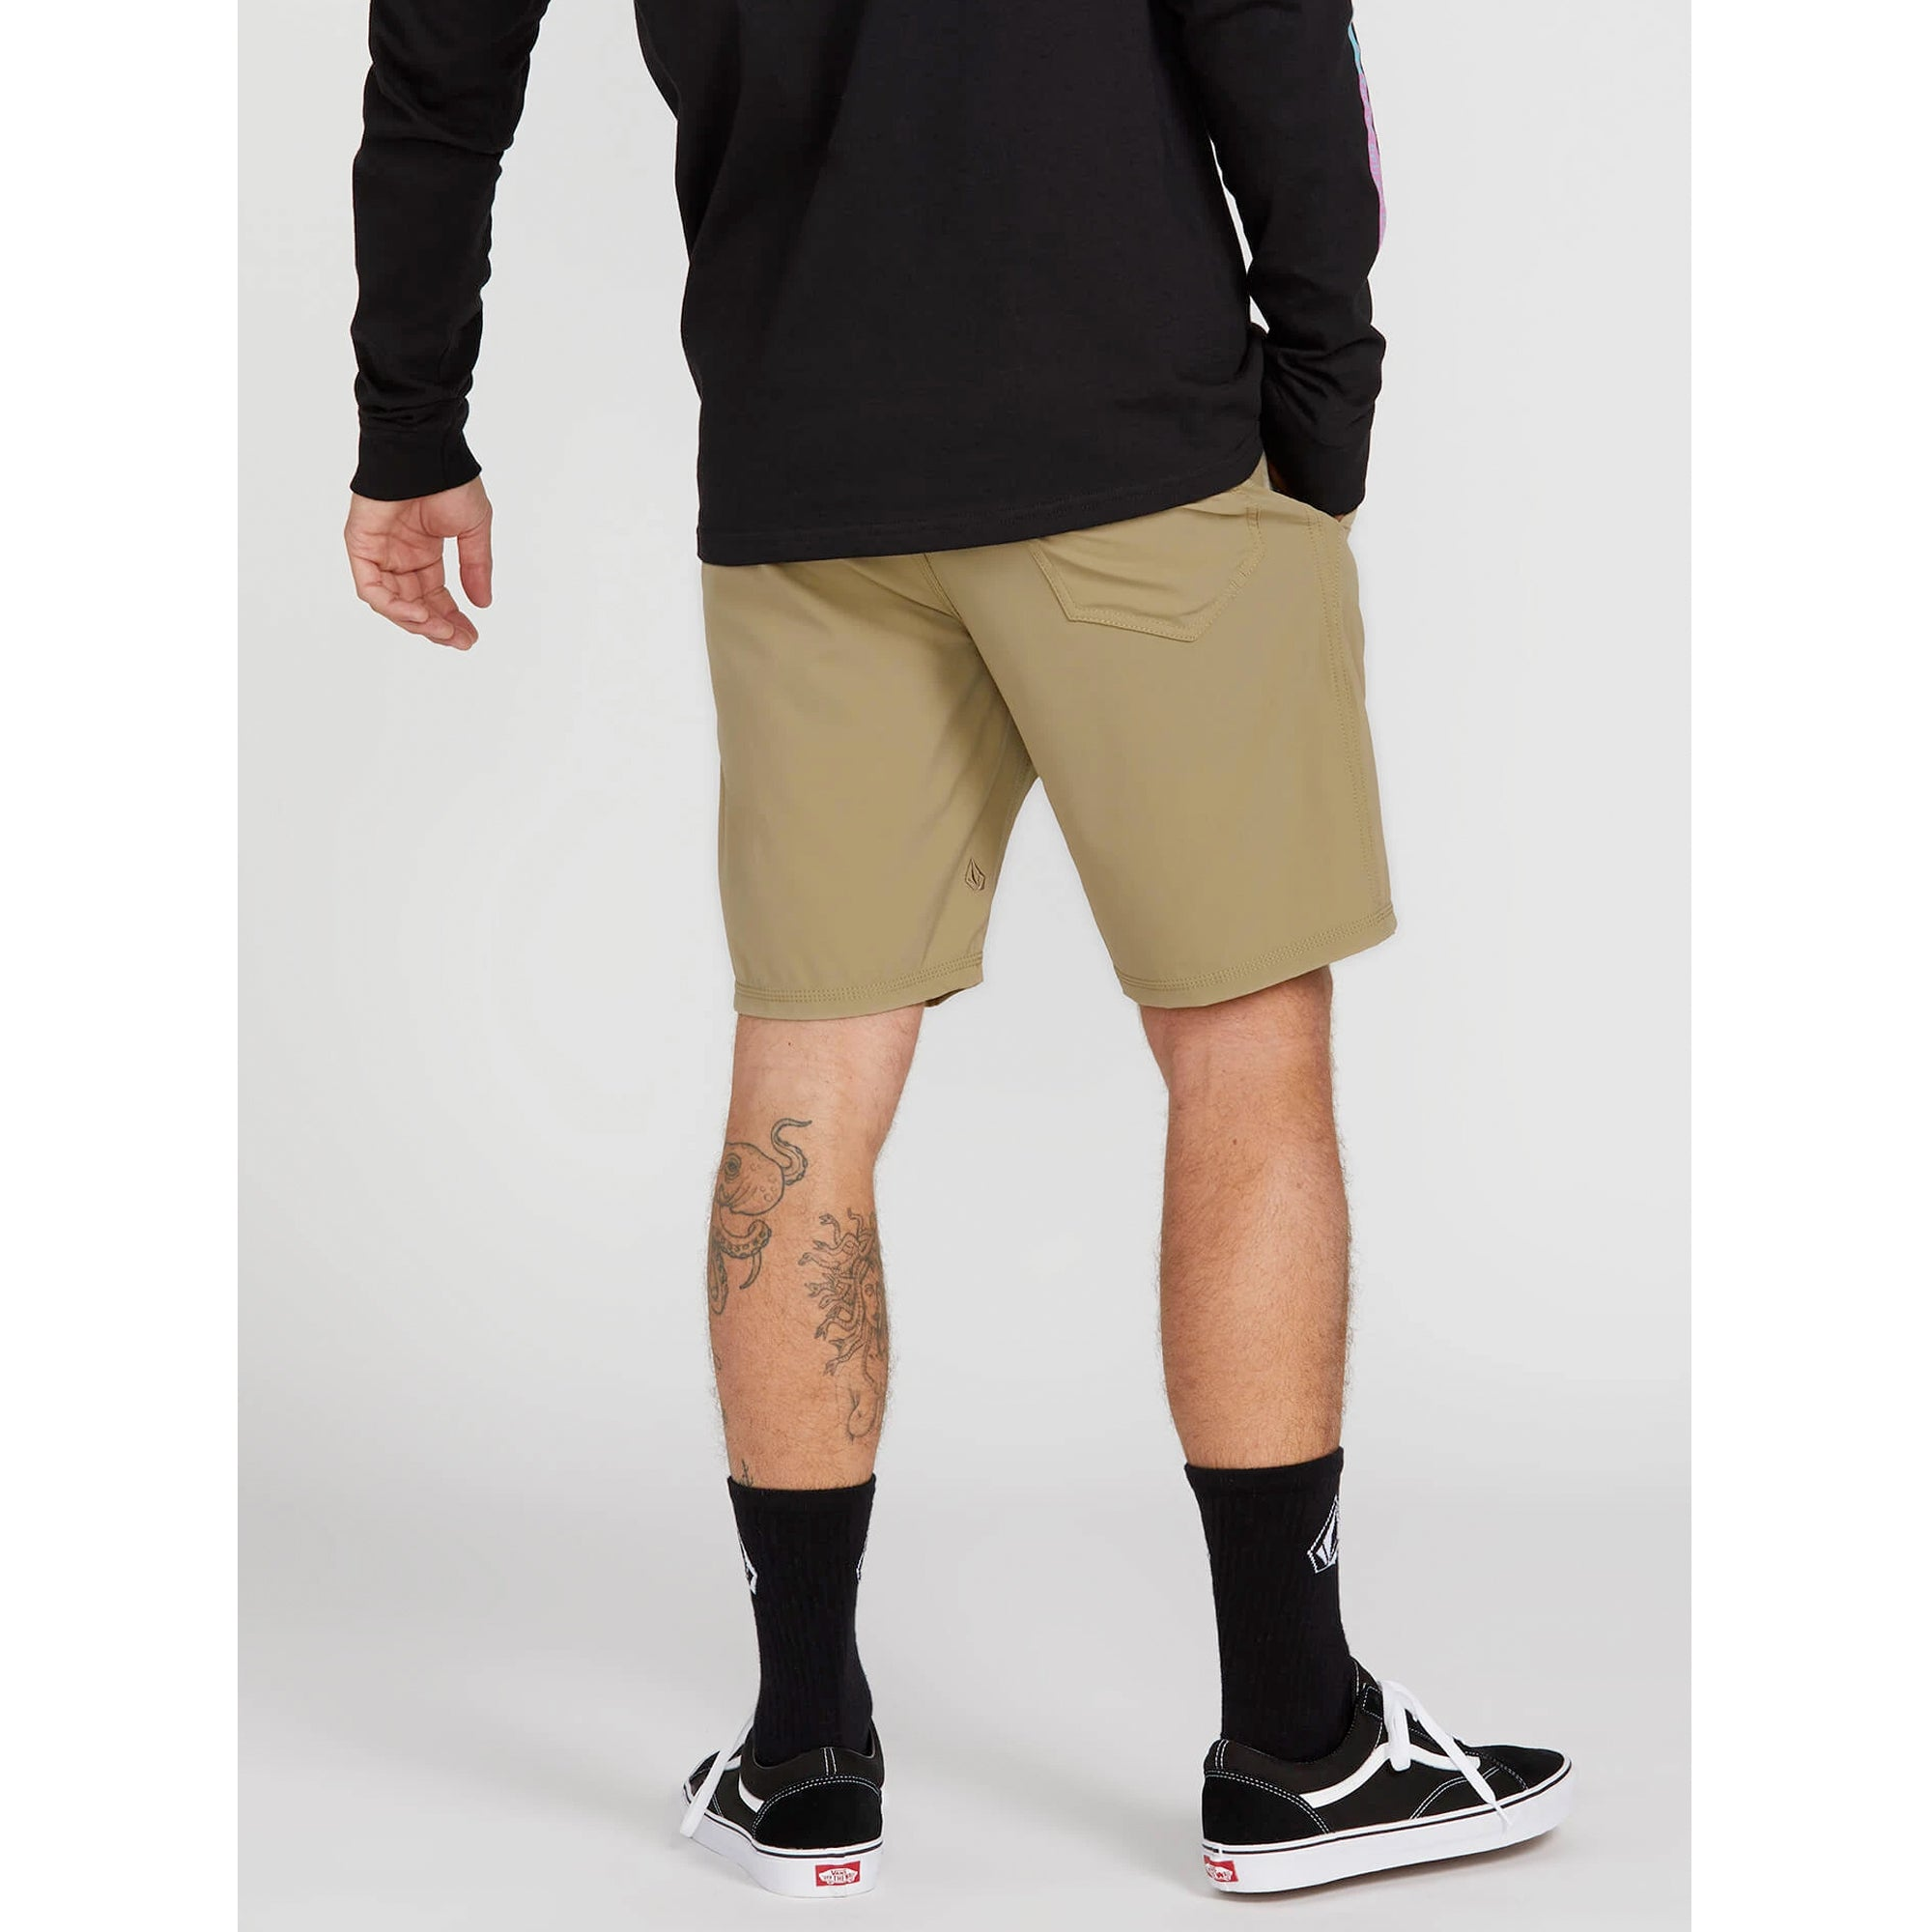 Volcom Misunderstoned Men's Walkshorts